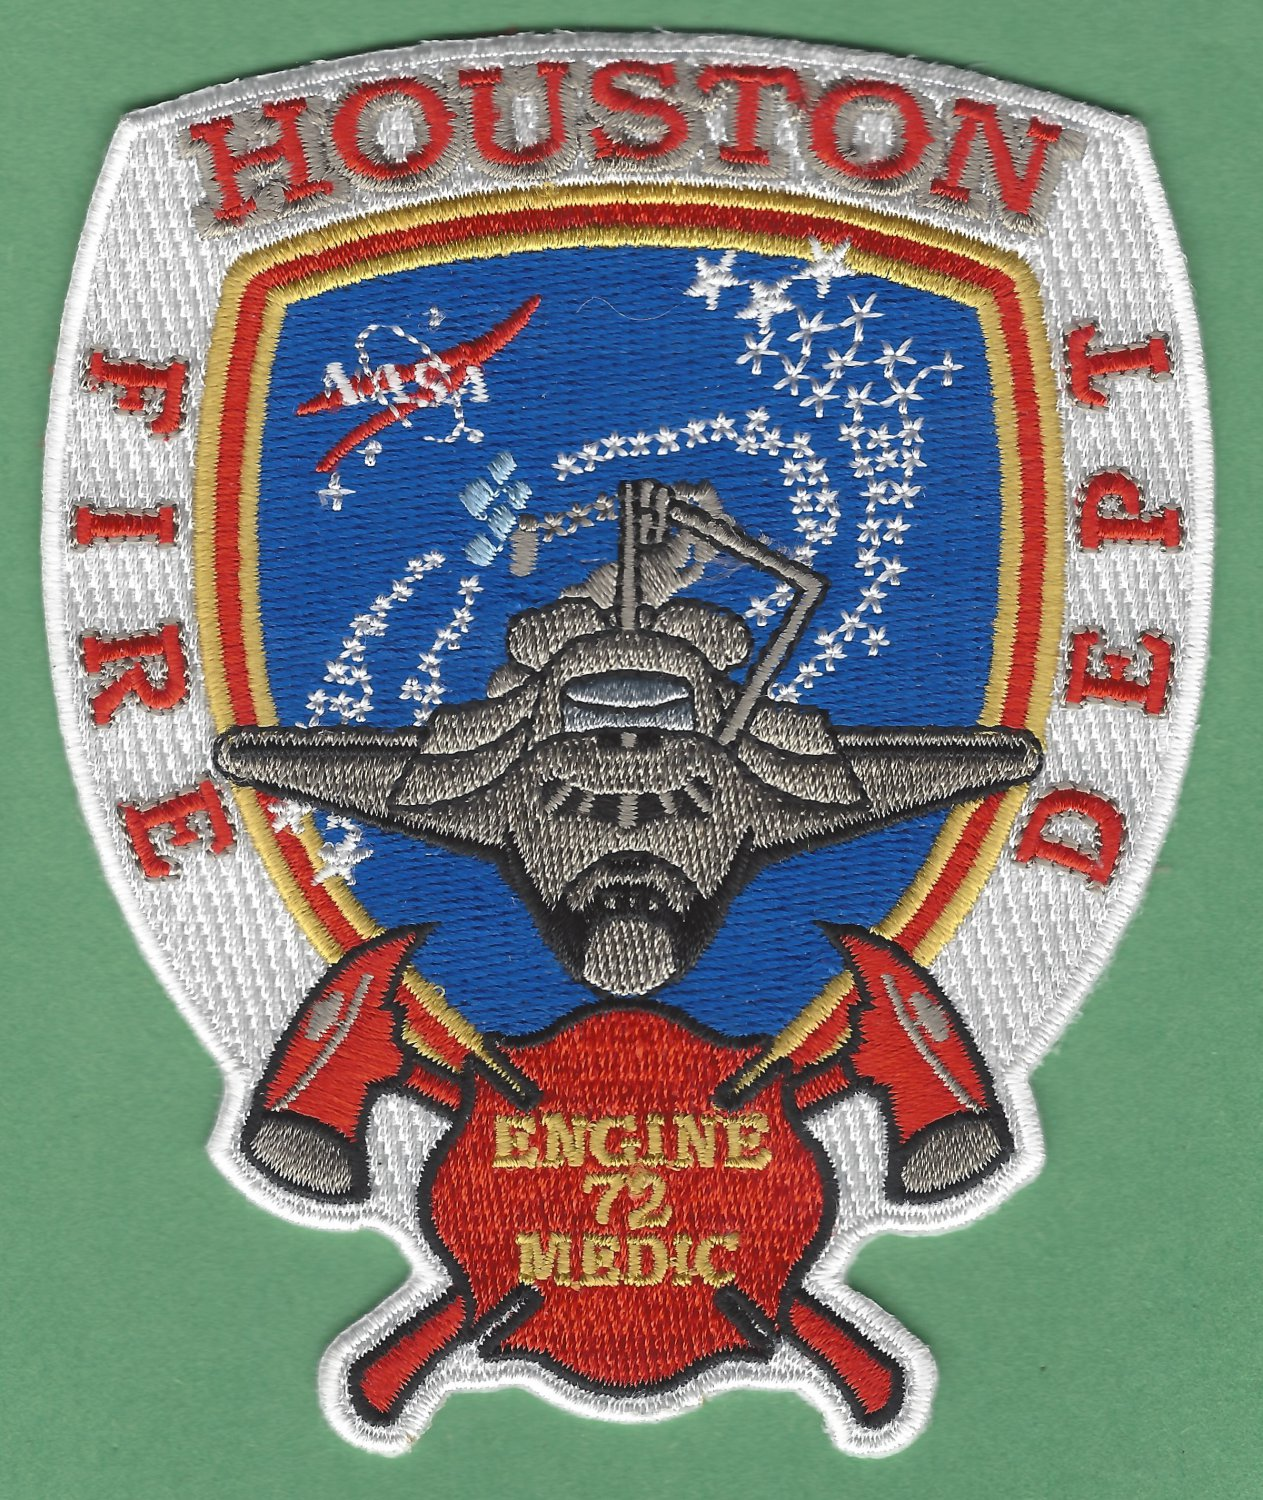 Houston Fire Department Engine Company 72 Patch Johnson Space Center